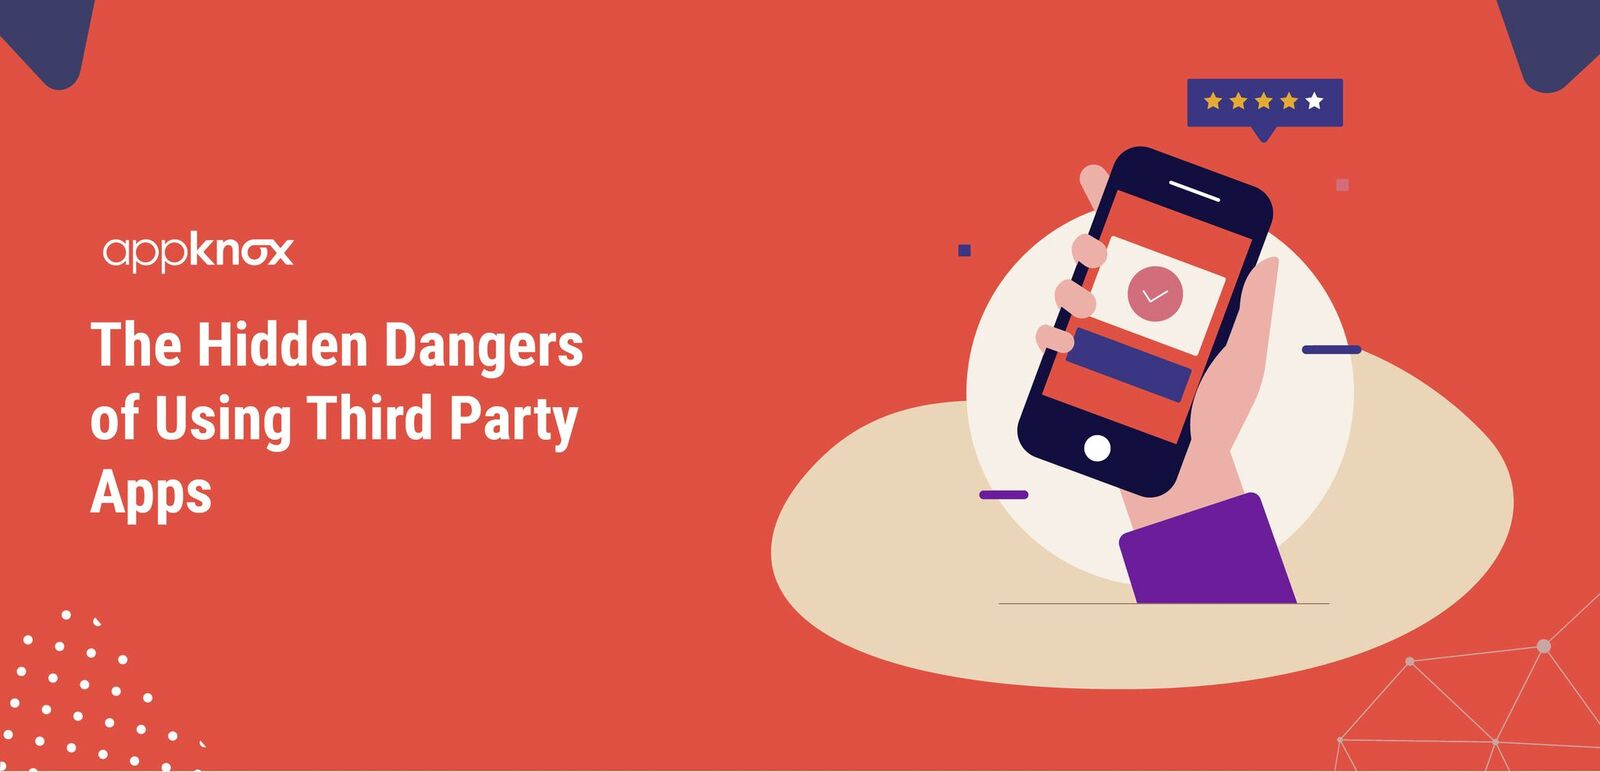 The Hidden Dangers of Using Third Party Apps